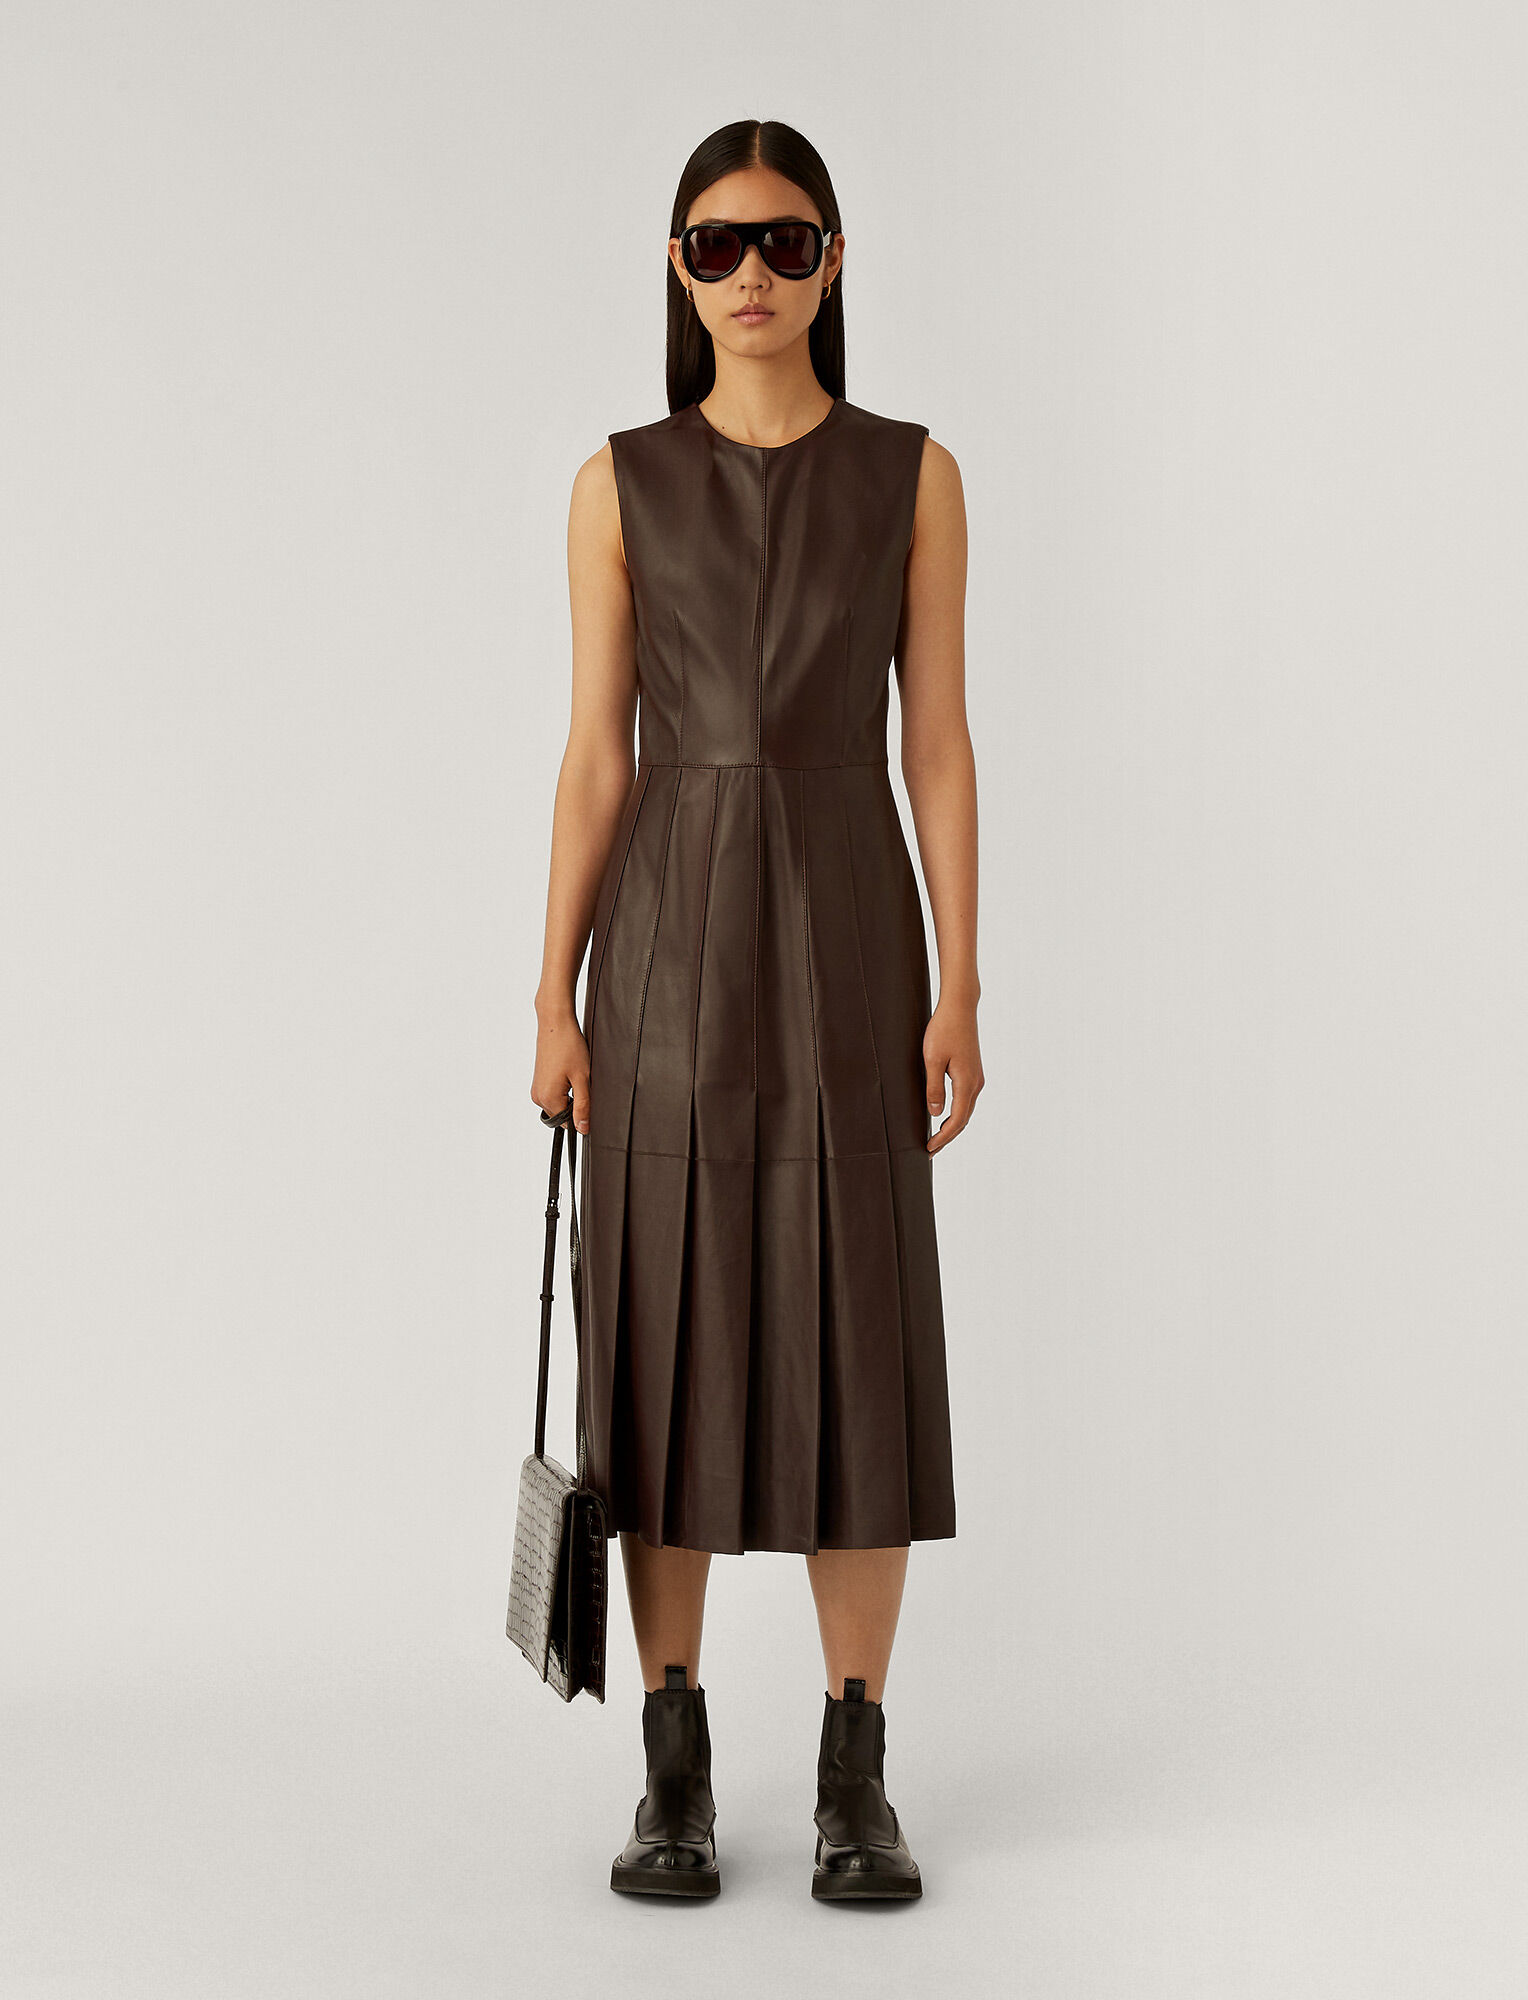 Joseph, Demry Nappa Leather Dress, in Ganache